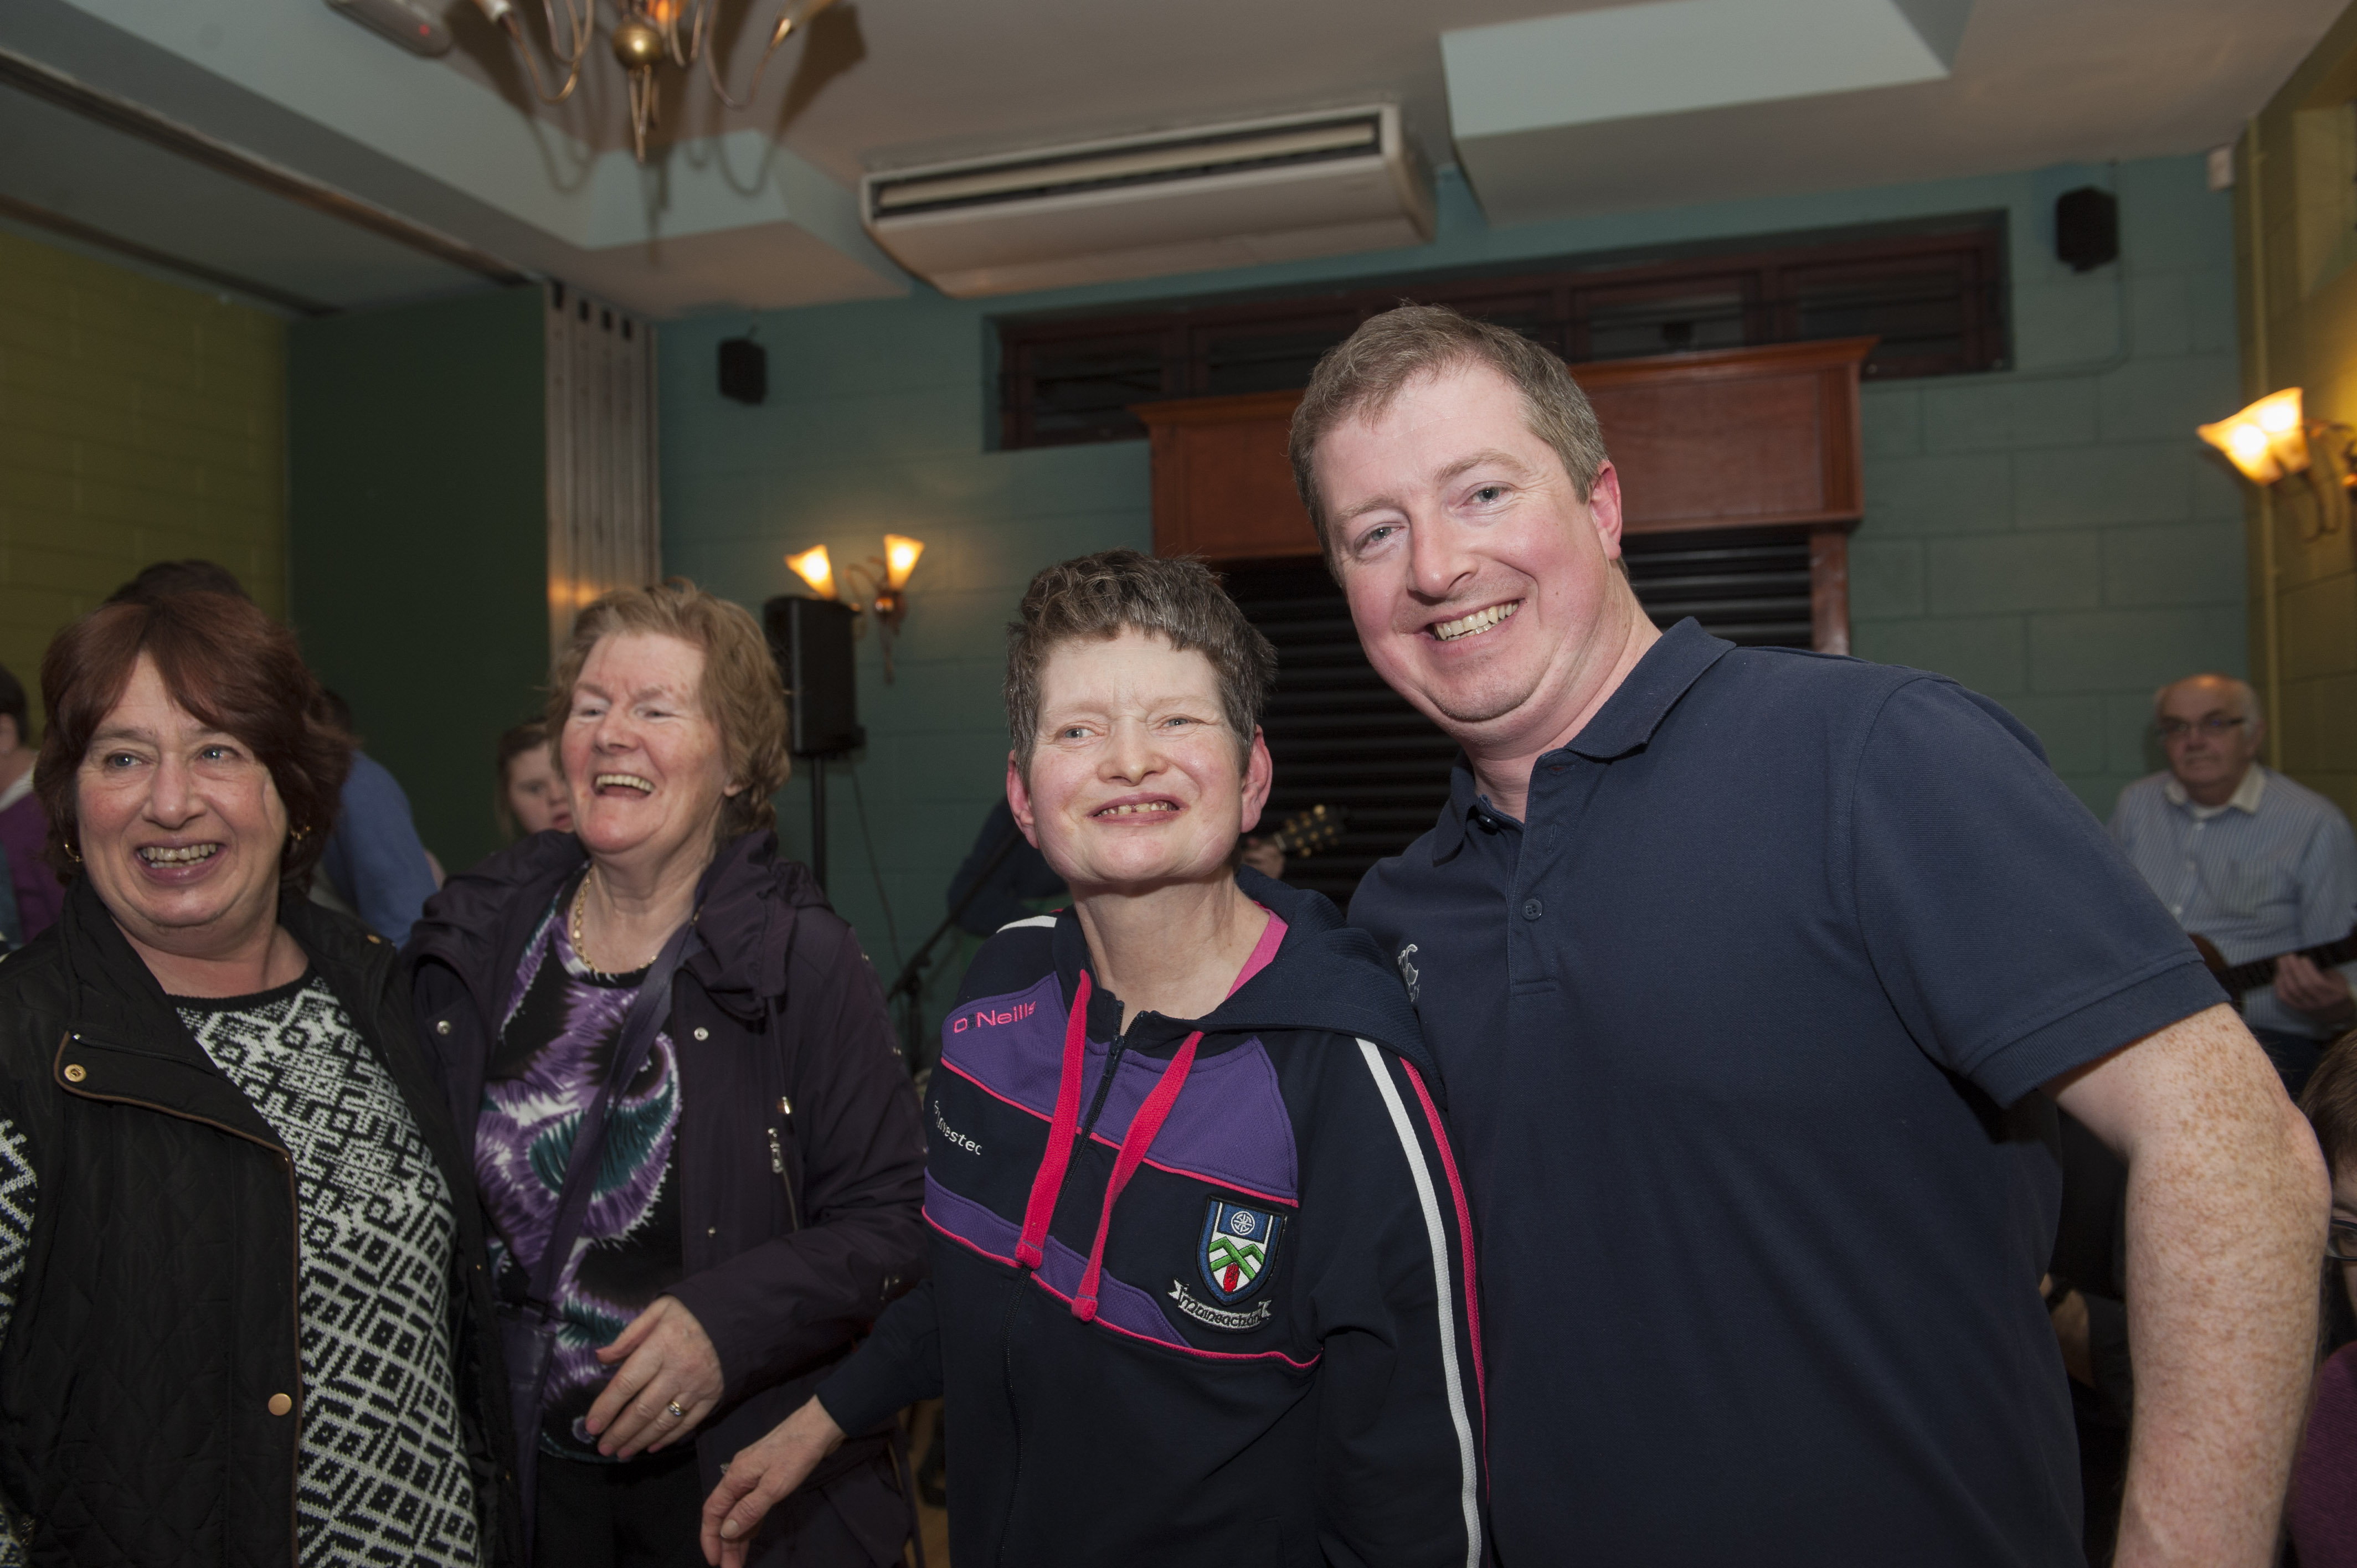 Fiona Callan and Padraic Callan at the Monaghan Arch Club Party, when it was hosted by the Monaghan Harps GFC. ©Rory Geary/The Northern Standard